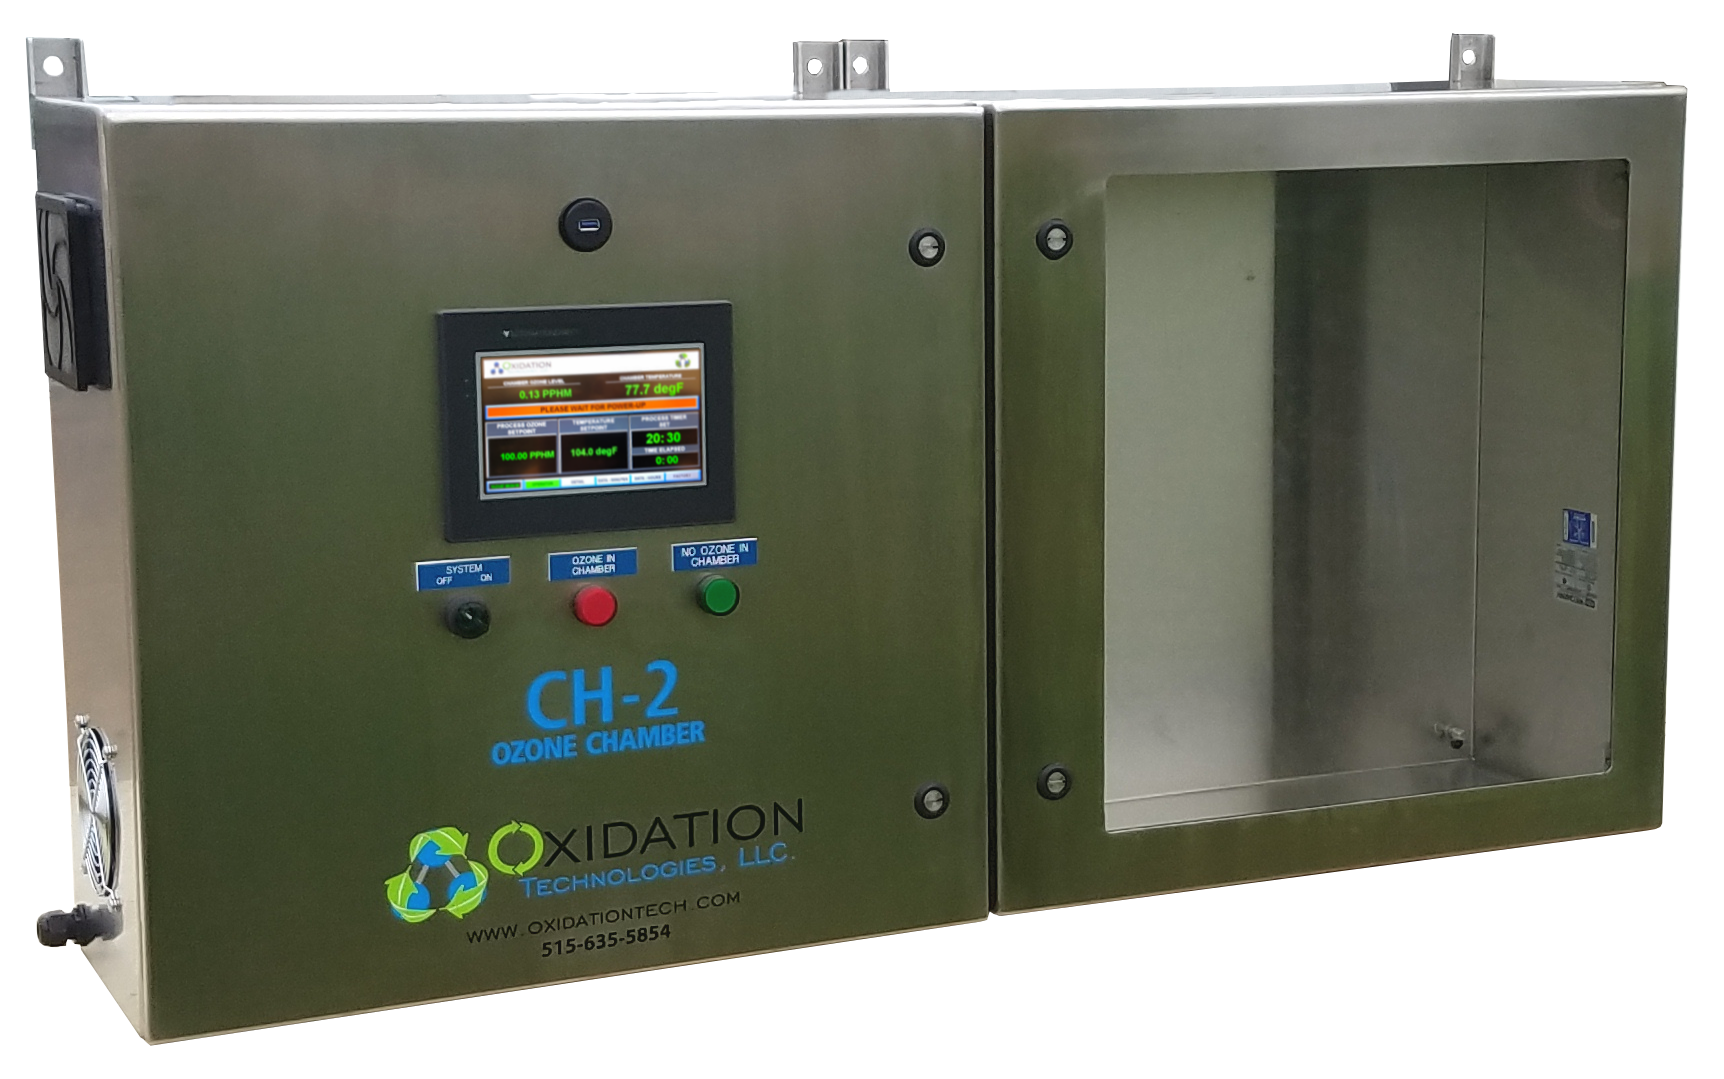 Ozone chamber for exposure testing